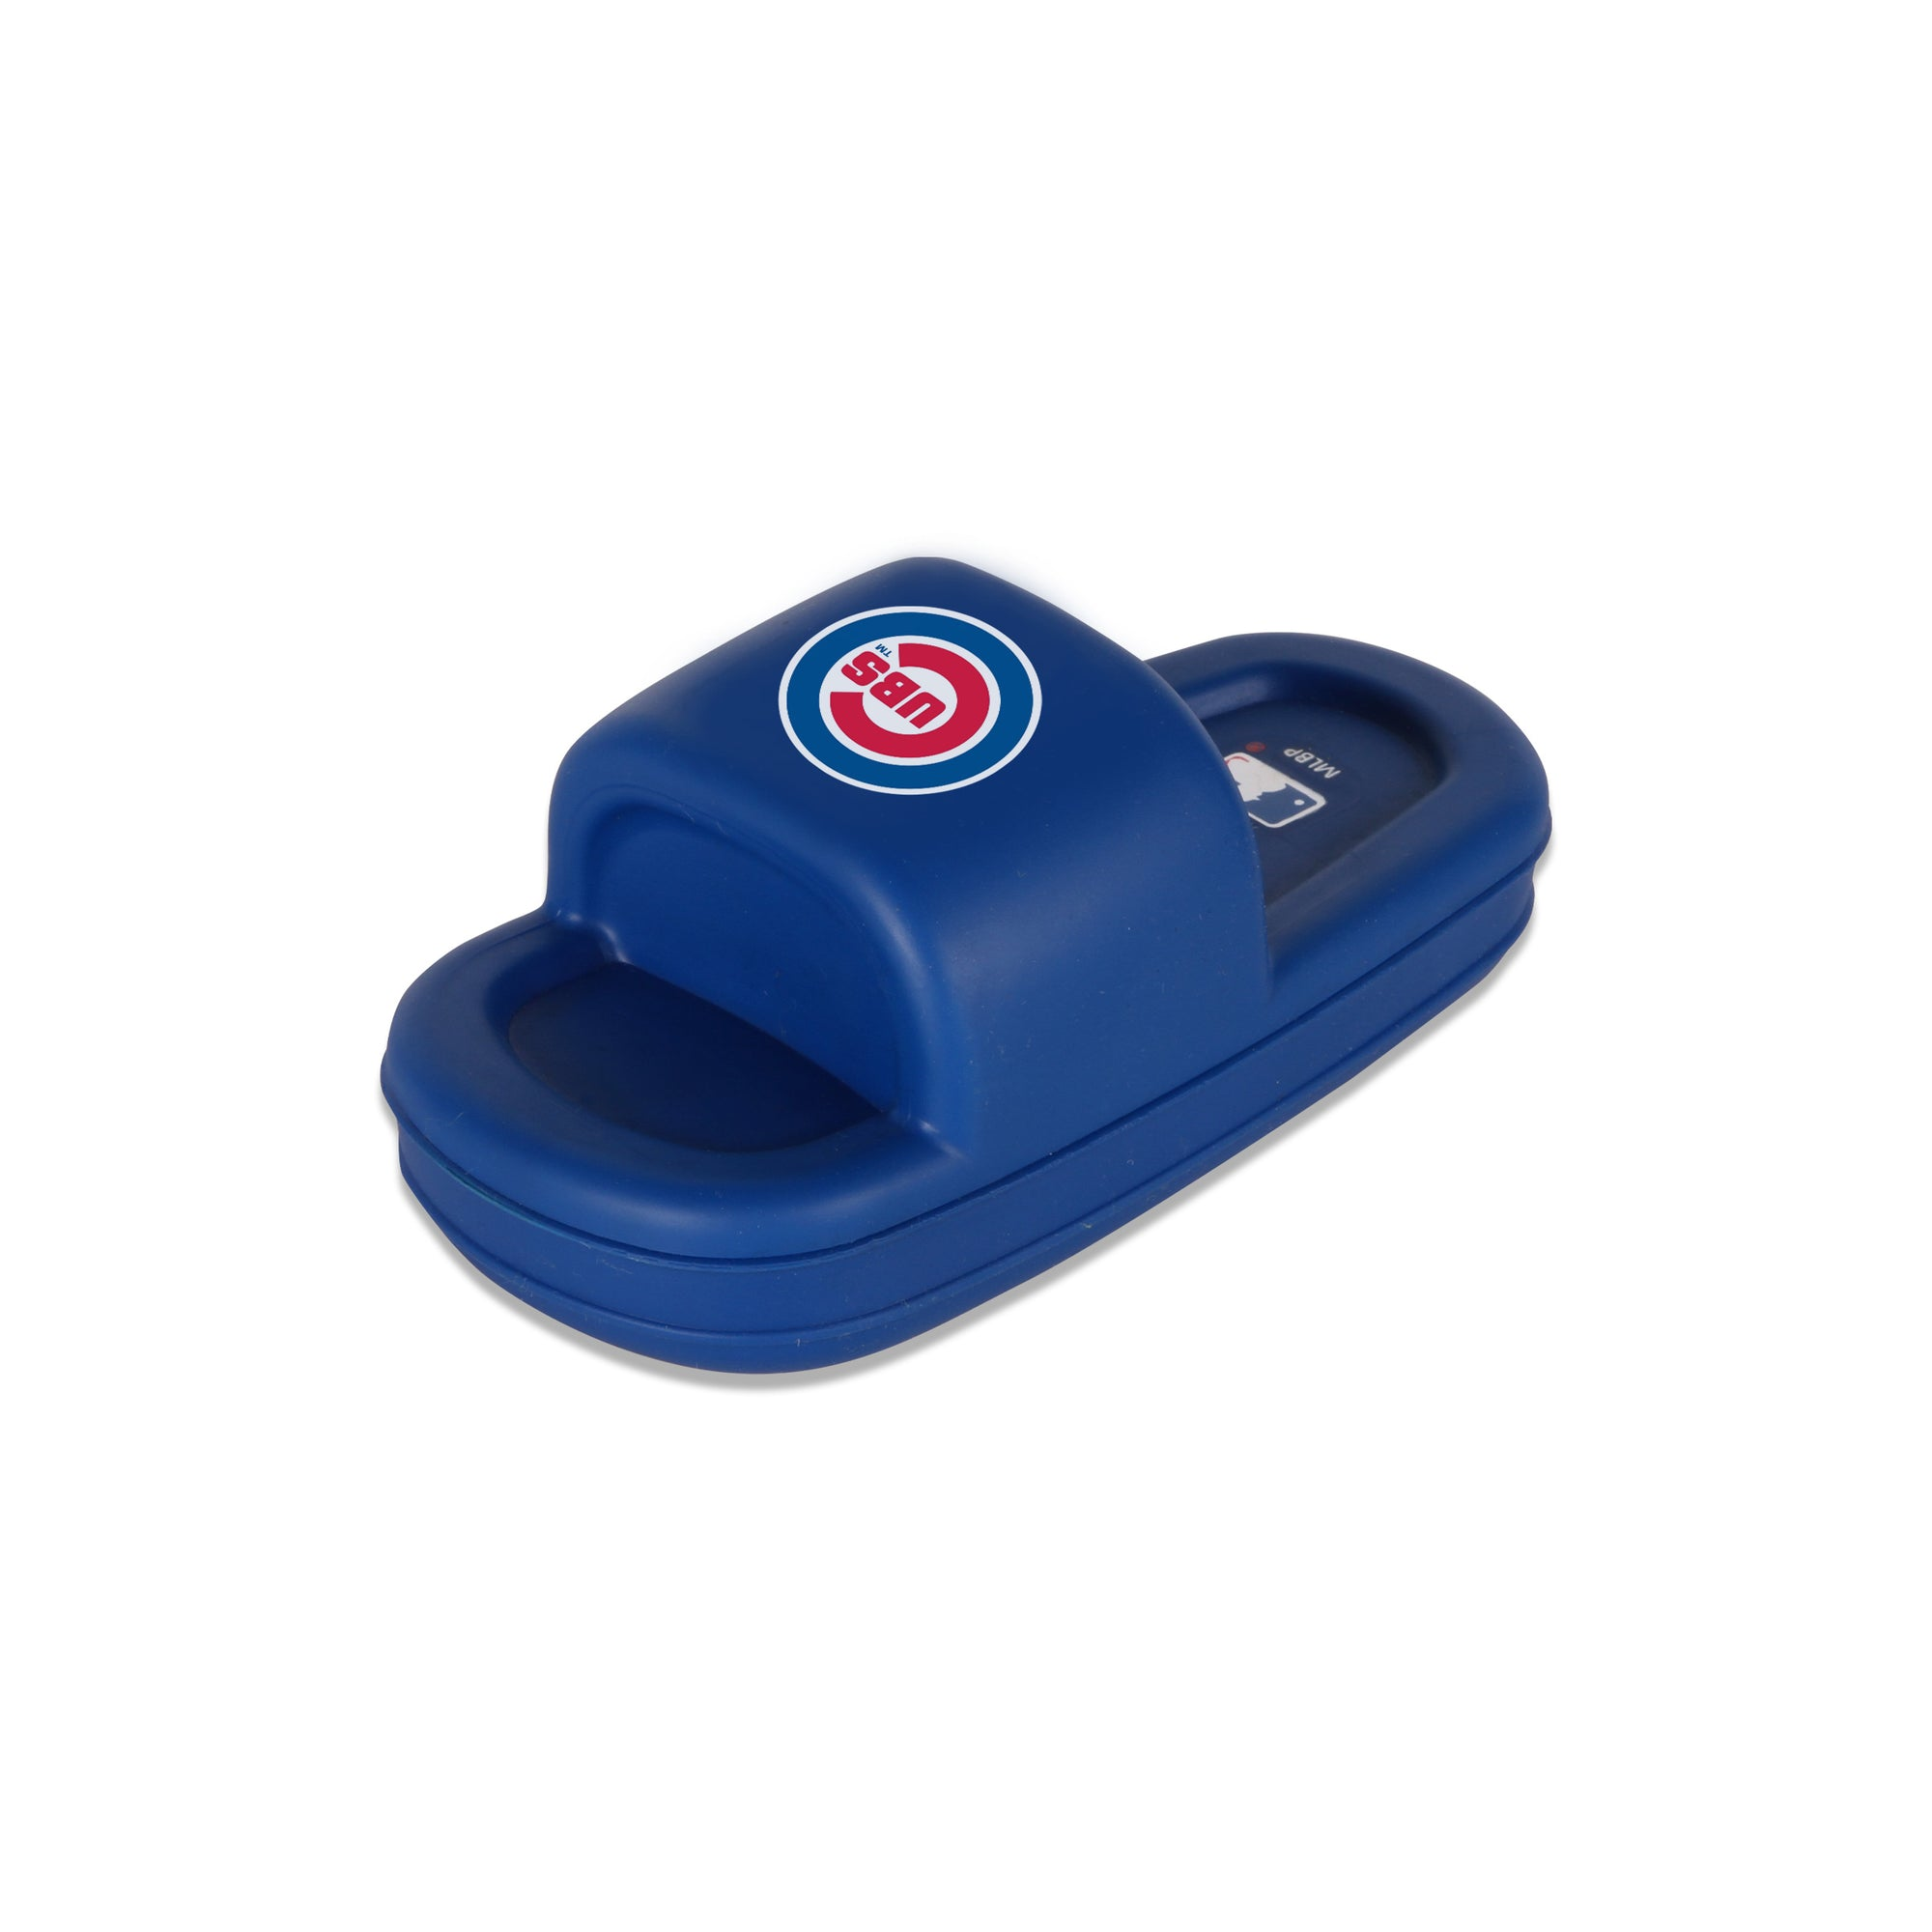 Nap Cap Chicago Cubs Mutt Slide Dog Chew Toy